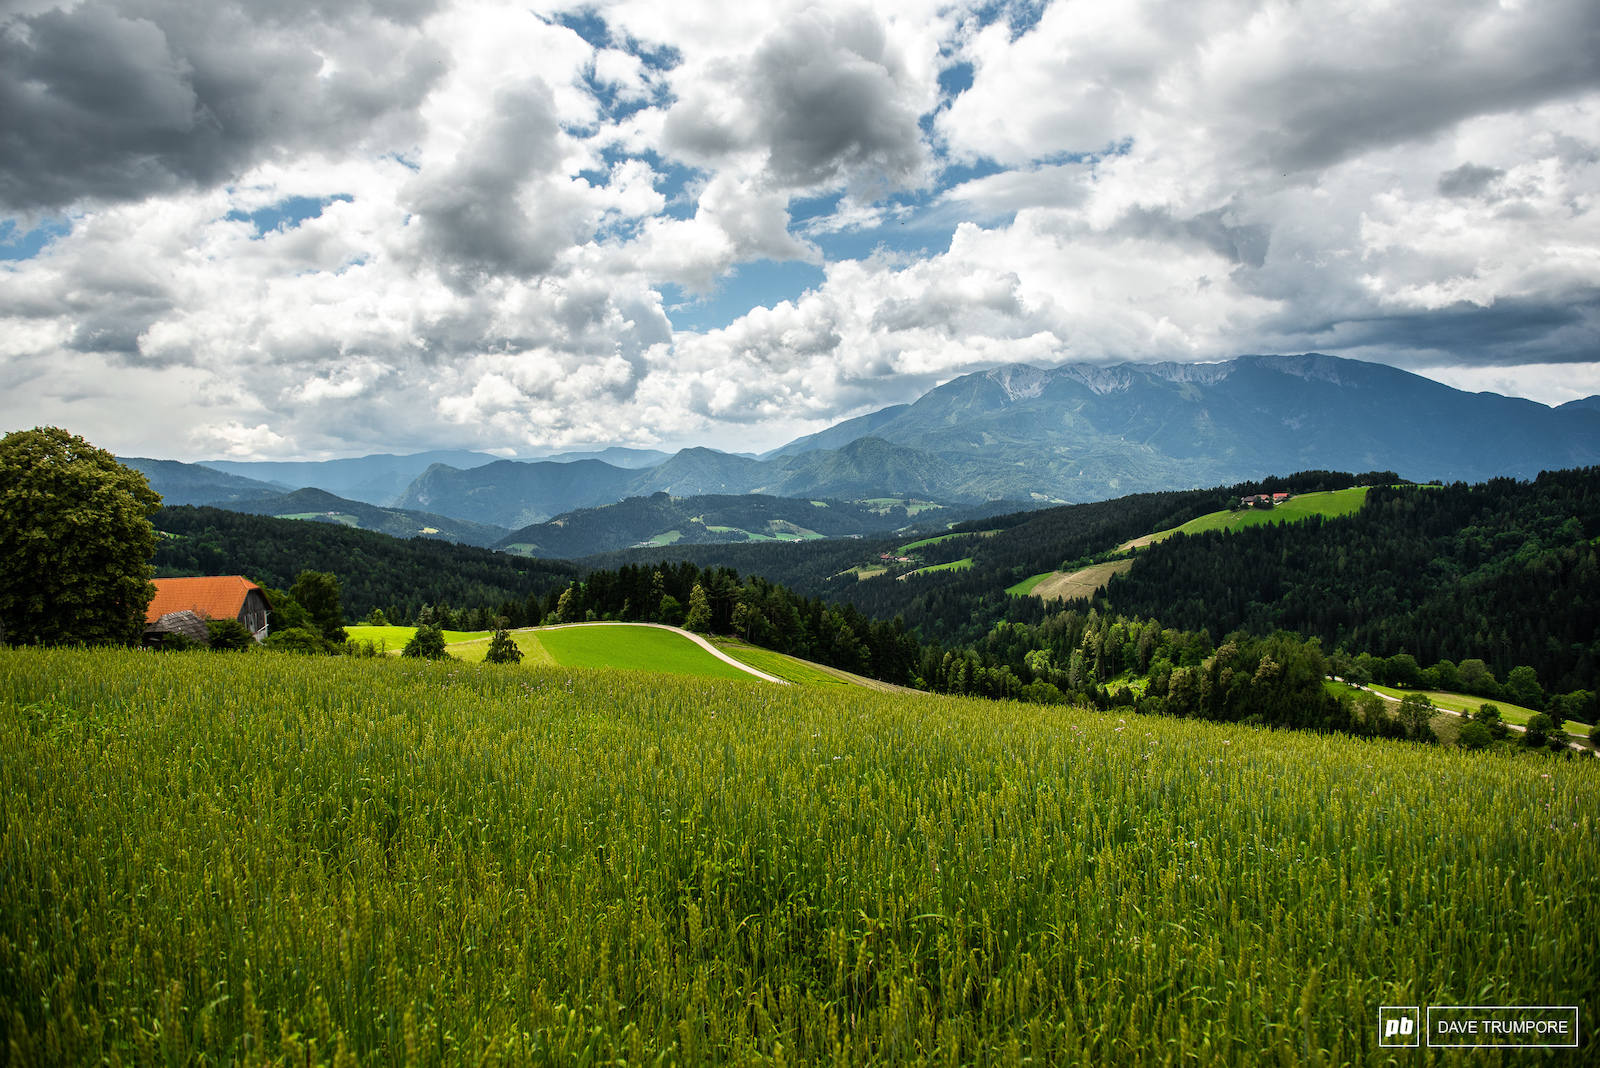 The Austrian - Slovenian border is not to bad on the eyes.